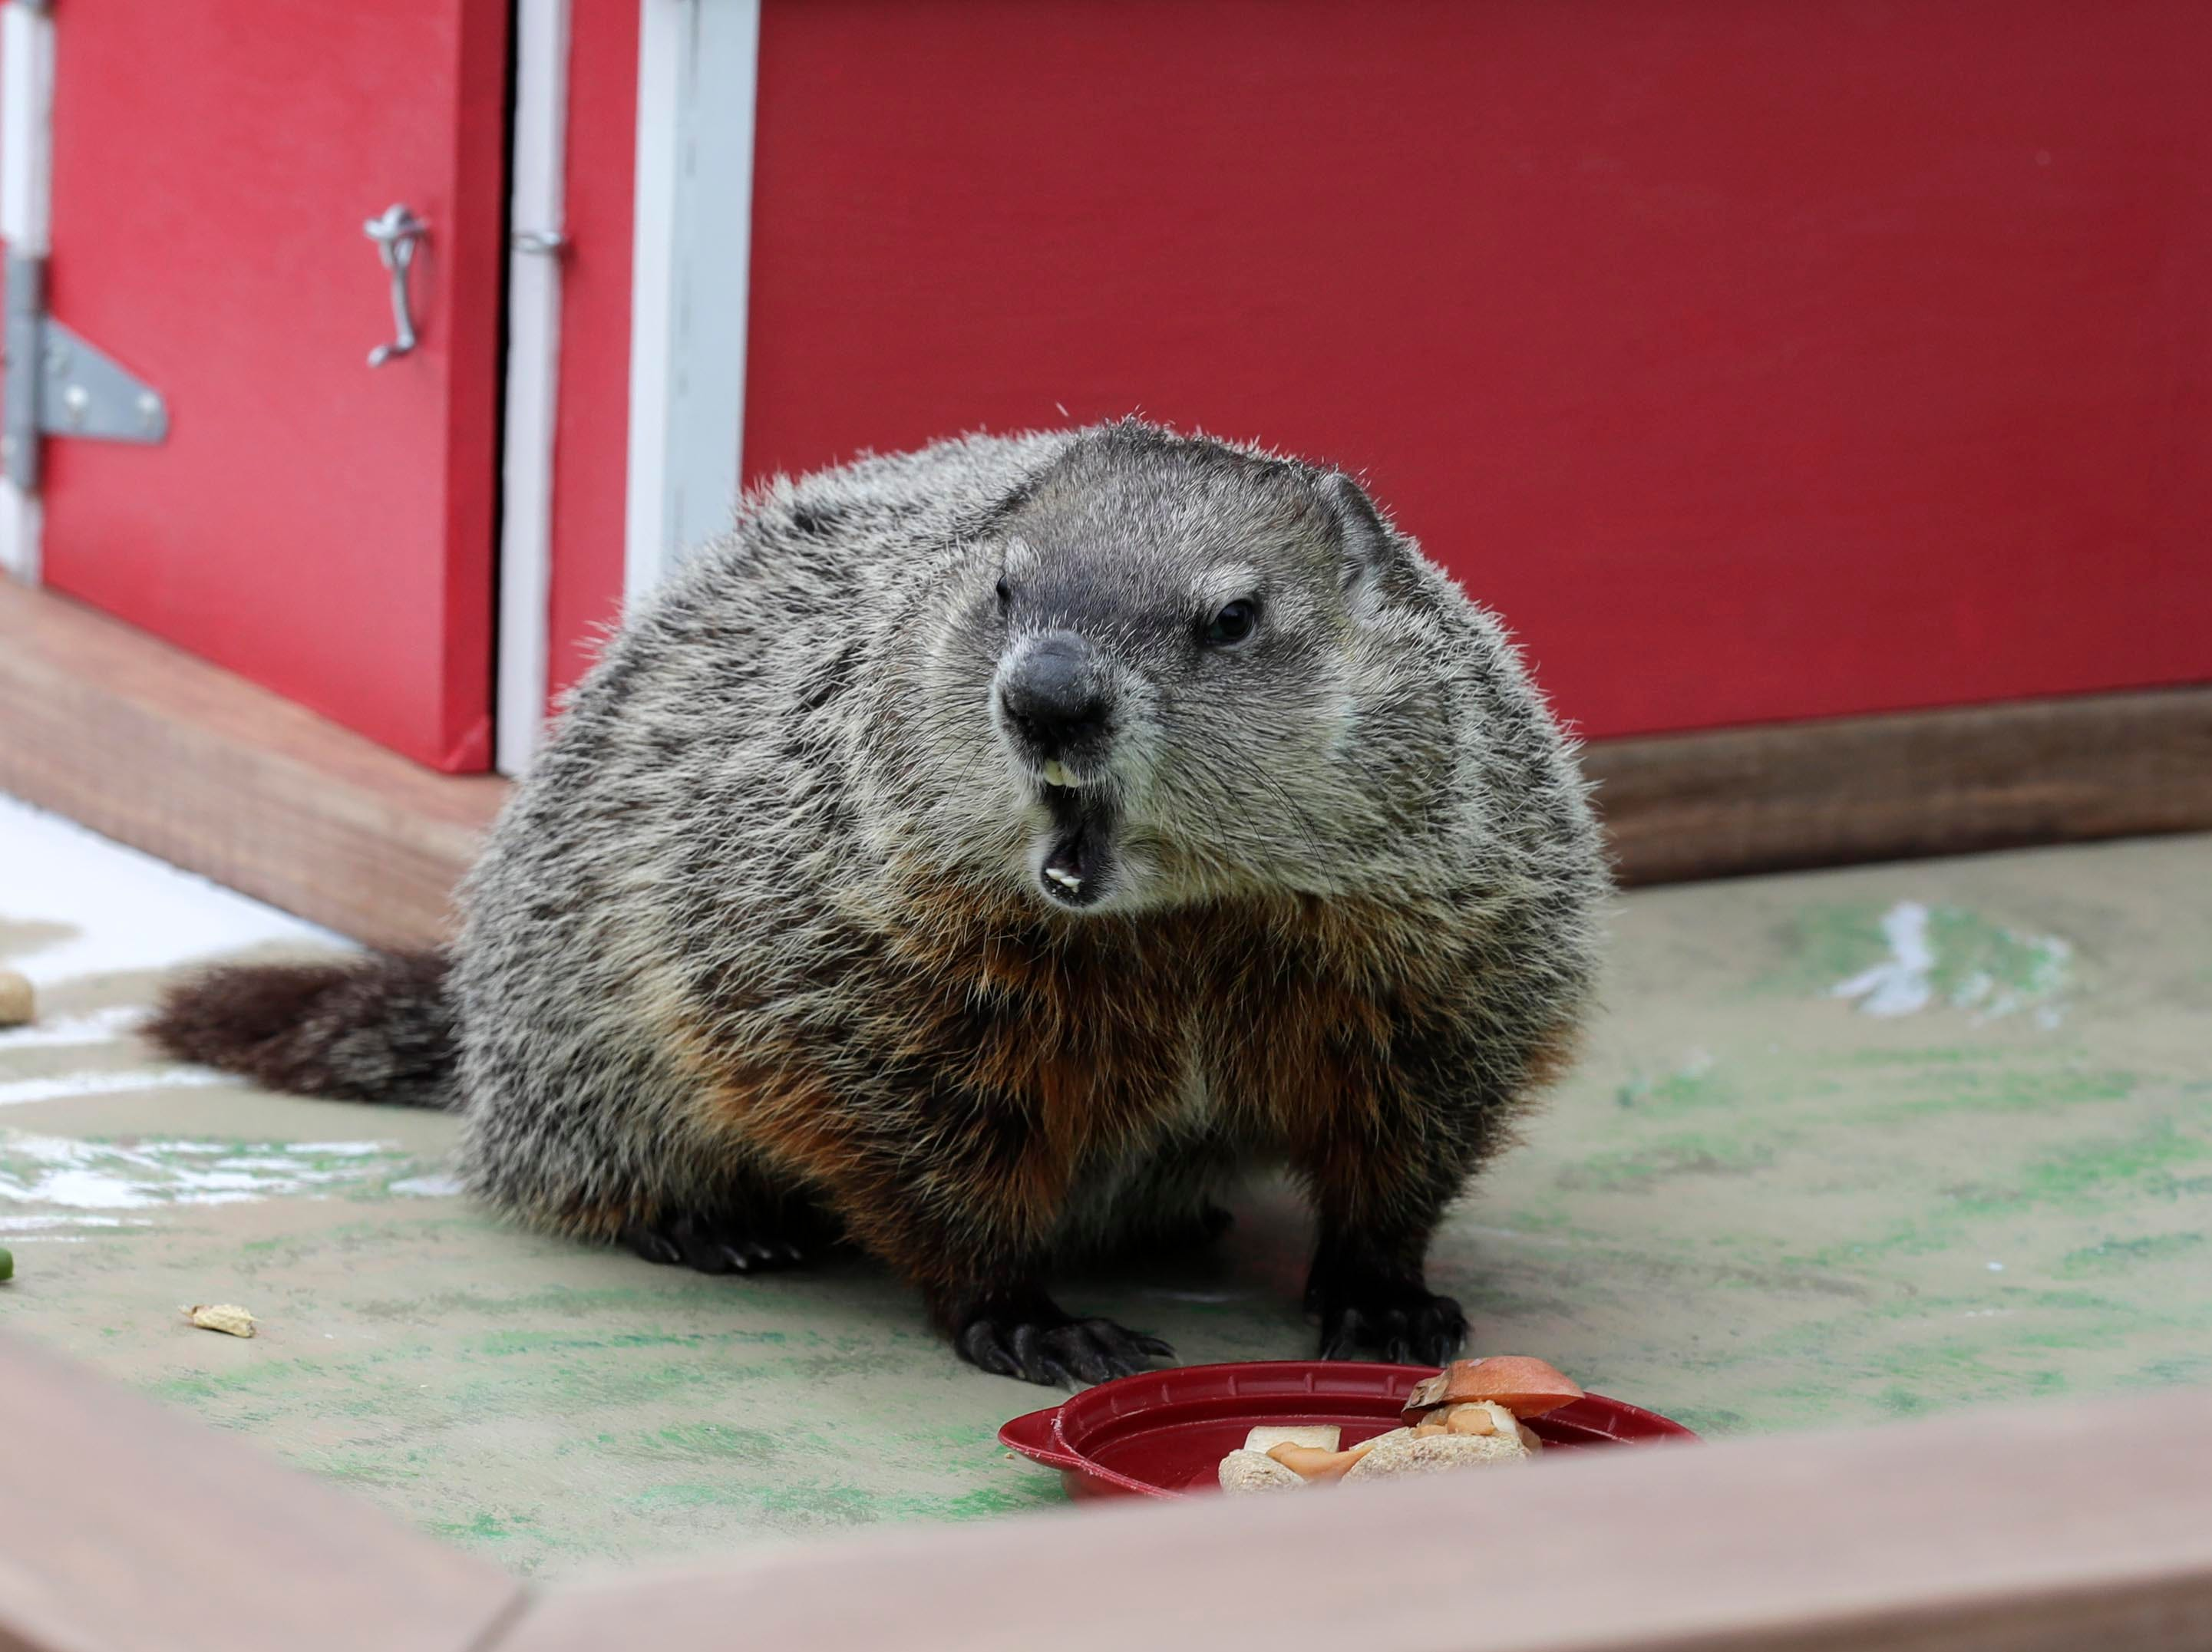 A little food helps persuade Gordy to come out from his winter hibernation.